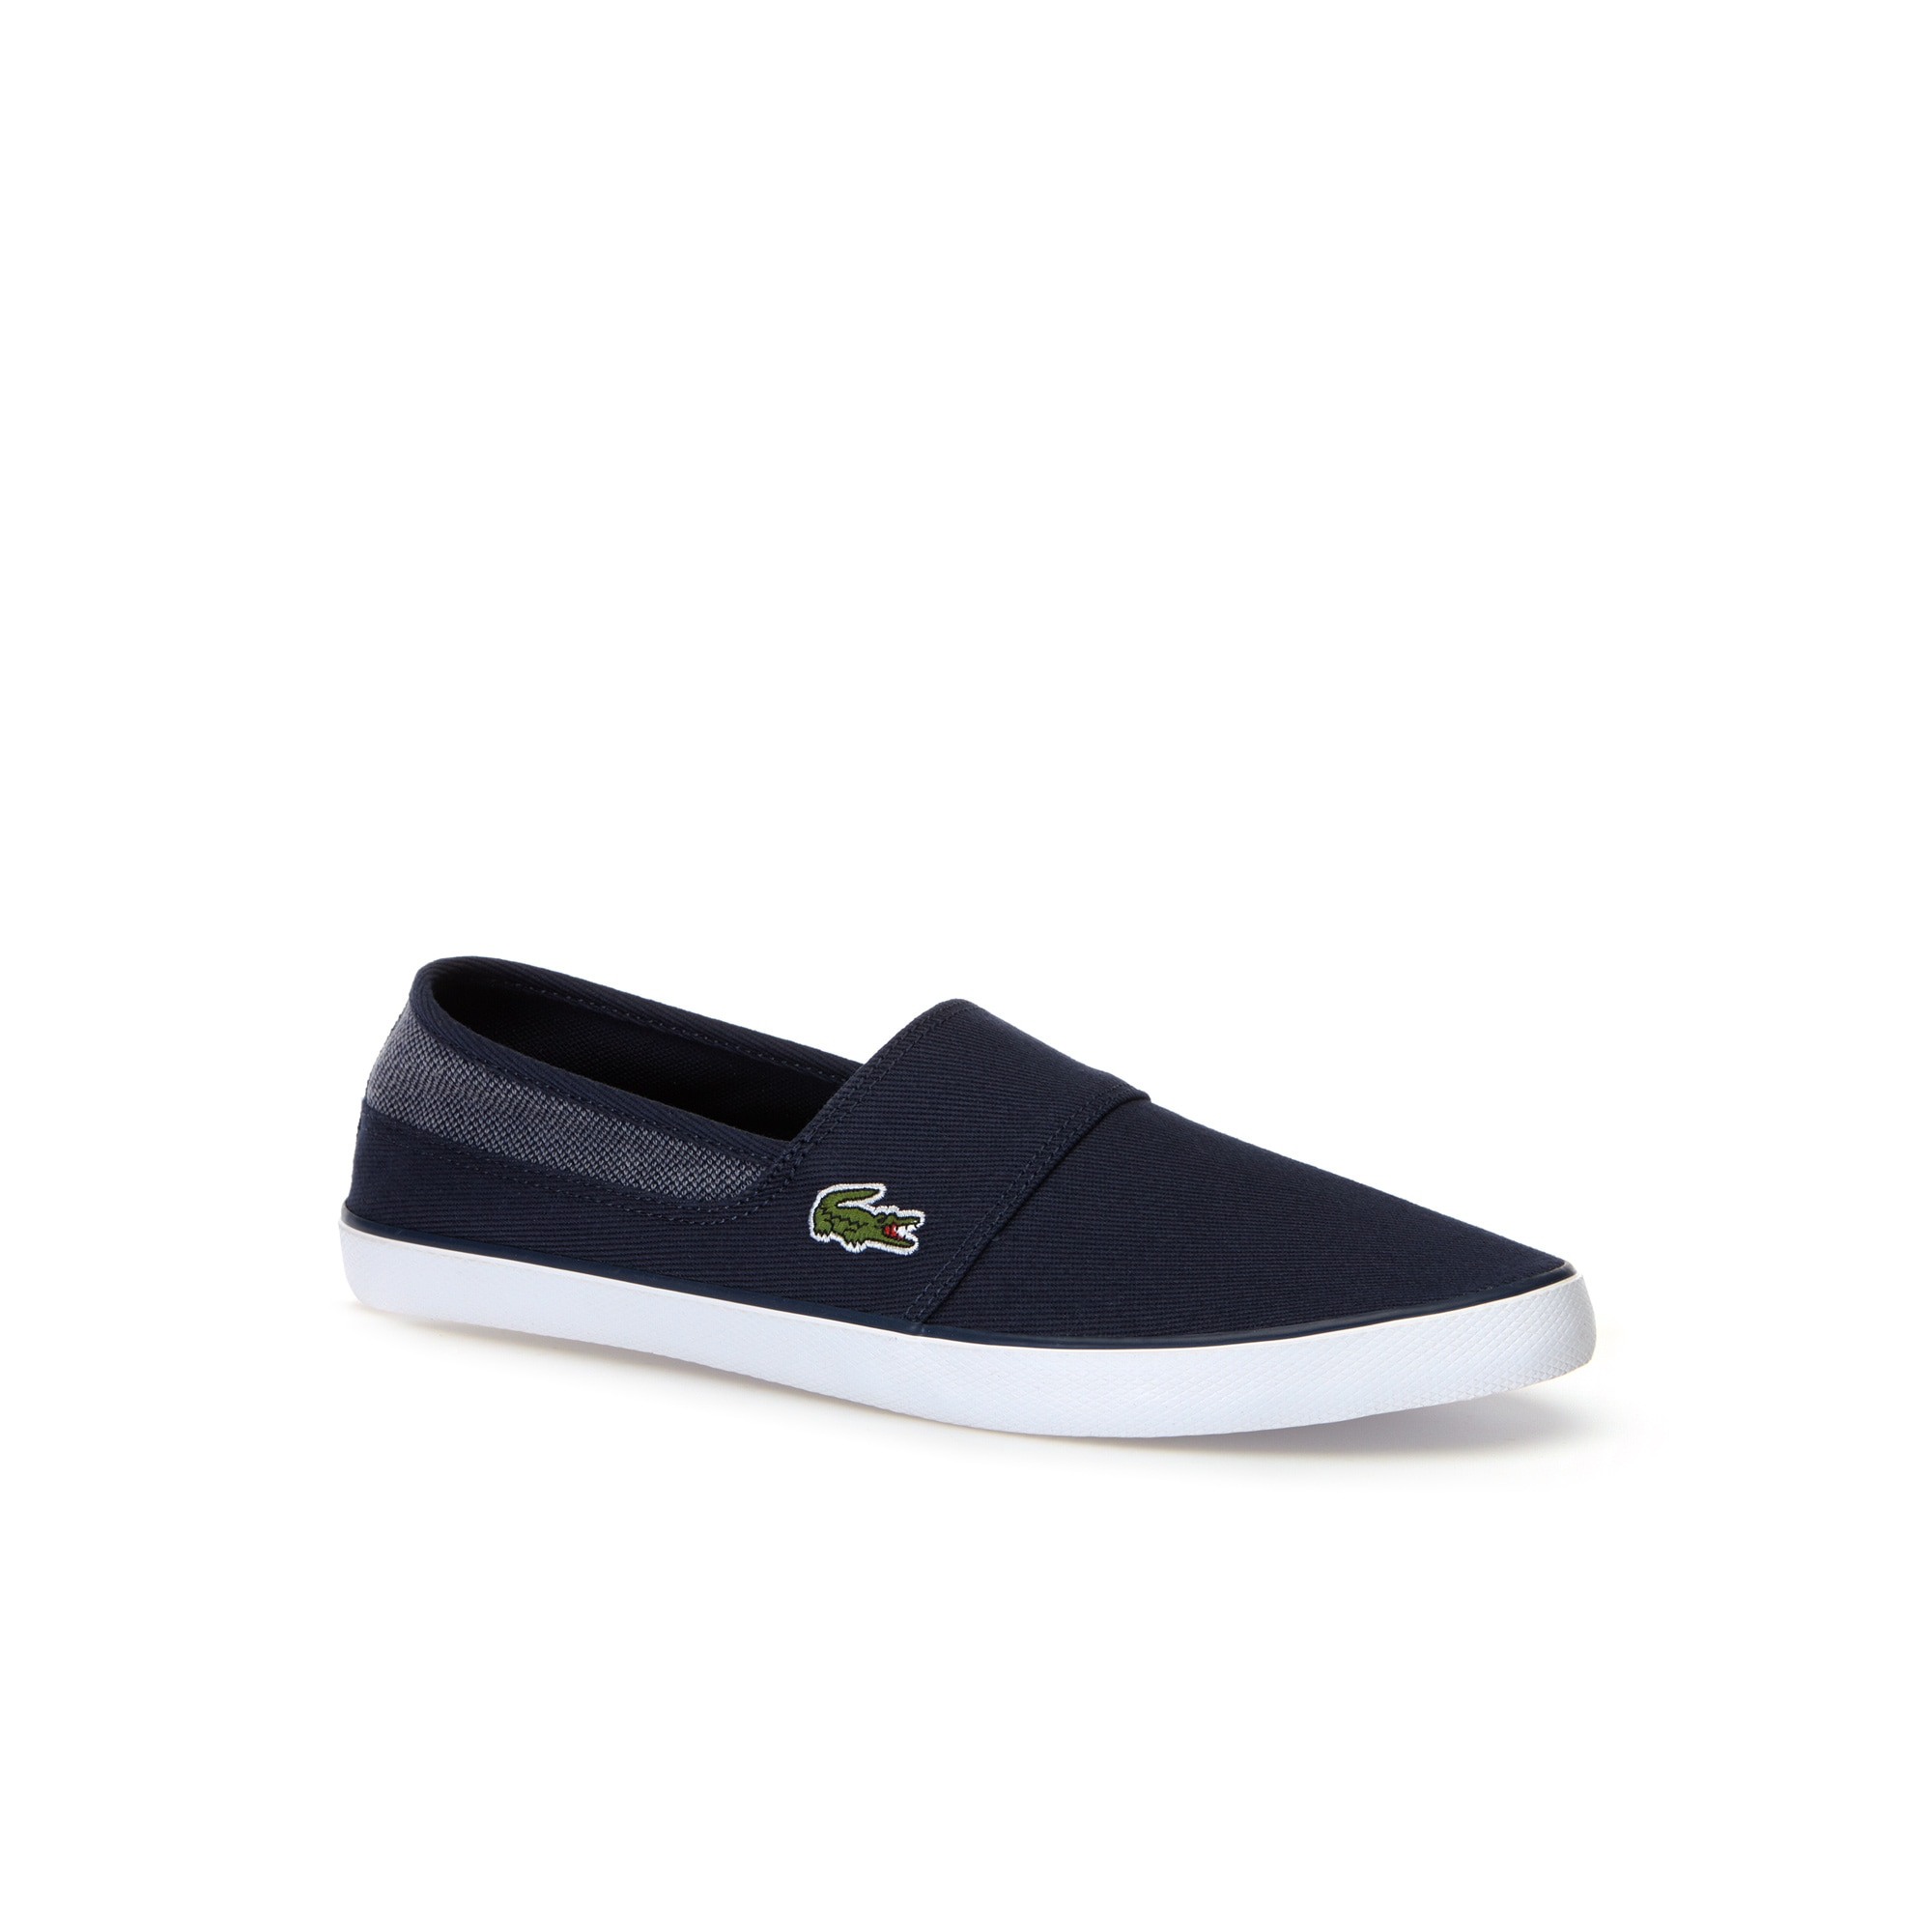 fd3831d4630cd Men s Marice Canvas Twill Slip-ons. 300.00 AED 300.00 AED. Colour    NAVY NAVY